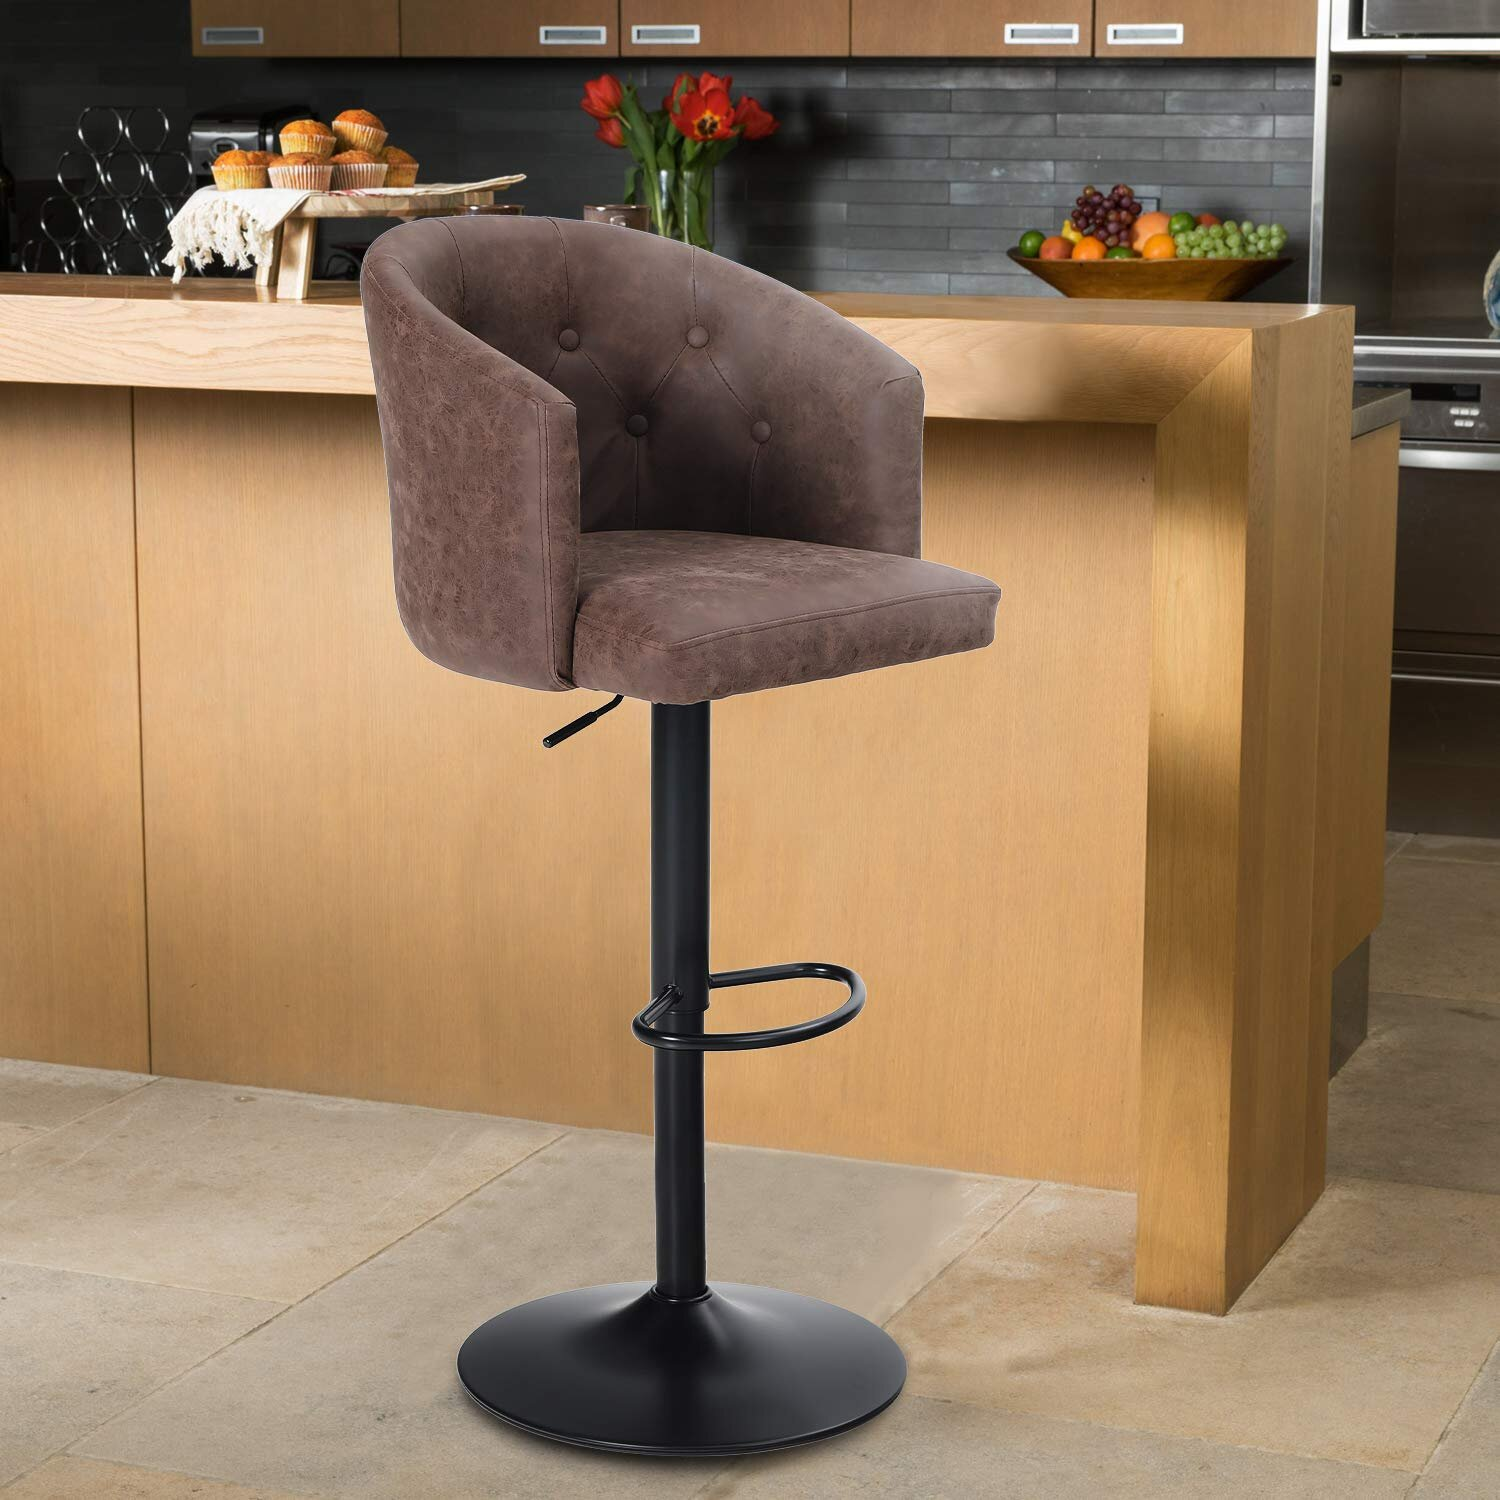 Picture of: 17 Stories Height Bar Stool Height Adjustable Barstool For Kitchen Counter Swivel Bar Chair With Rounded Mid Back For Kitchen Island Brown 1 Stool Wayfair